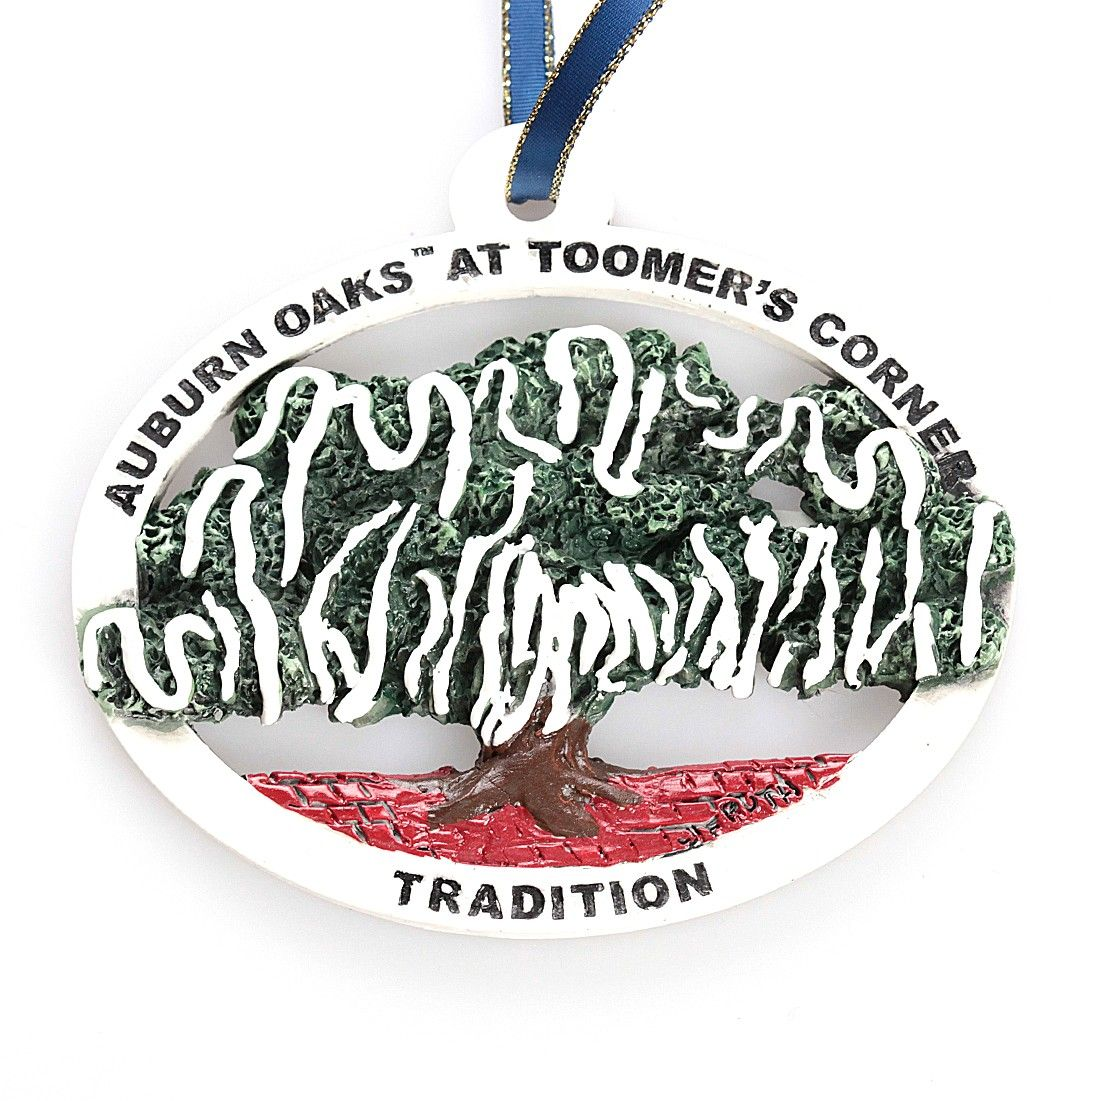 Remember traditions past with this Auburn Oaks at Toomer's ...